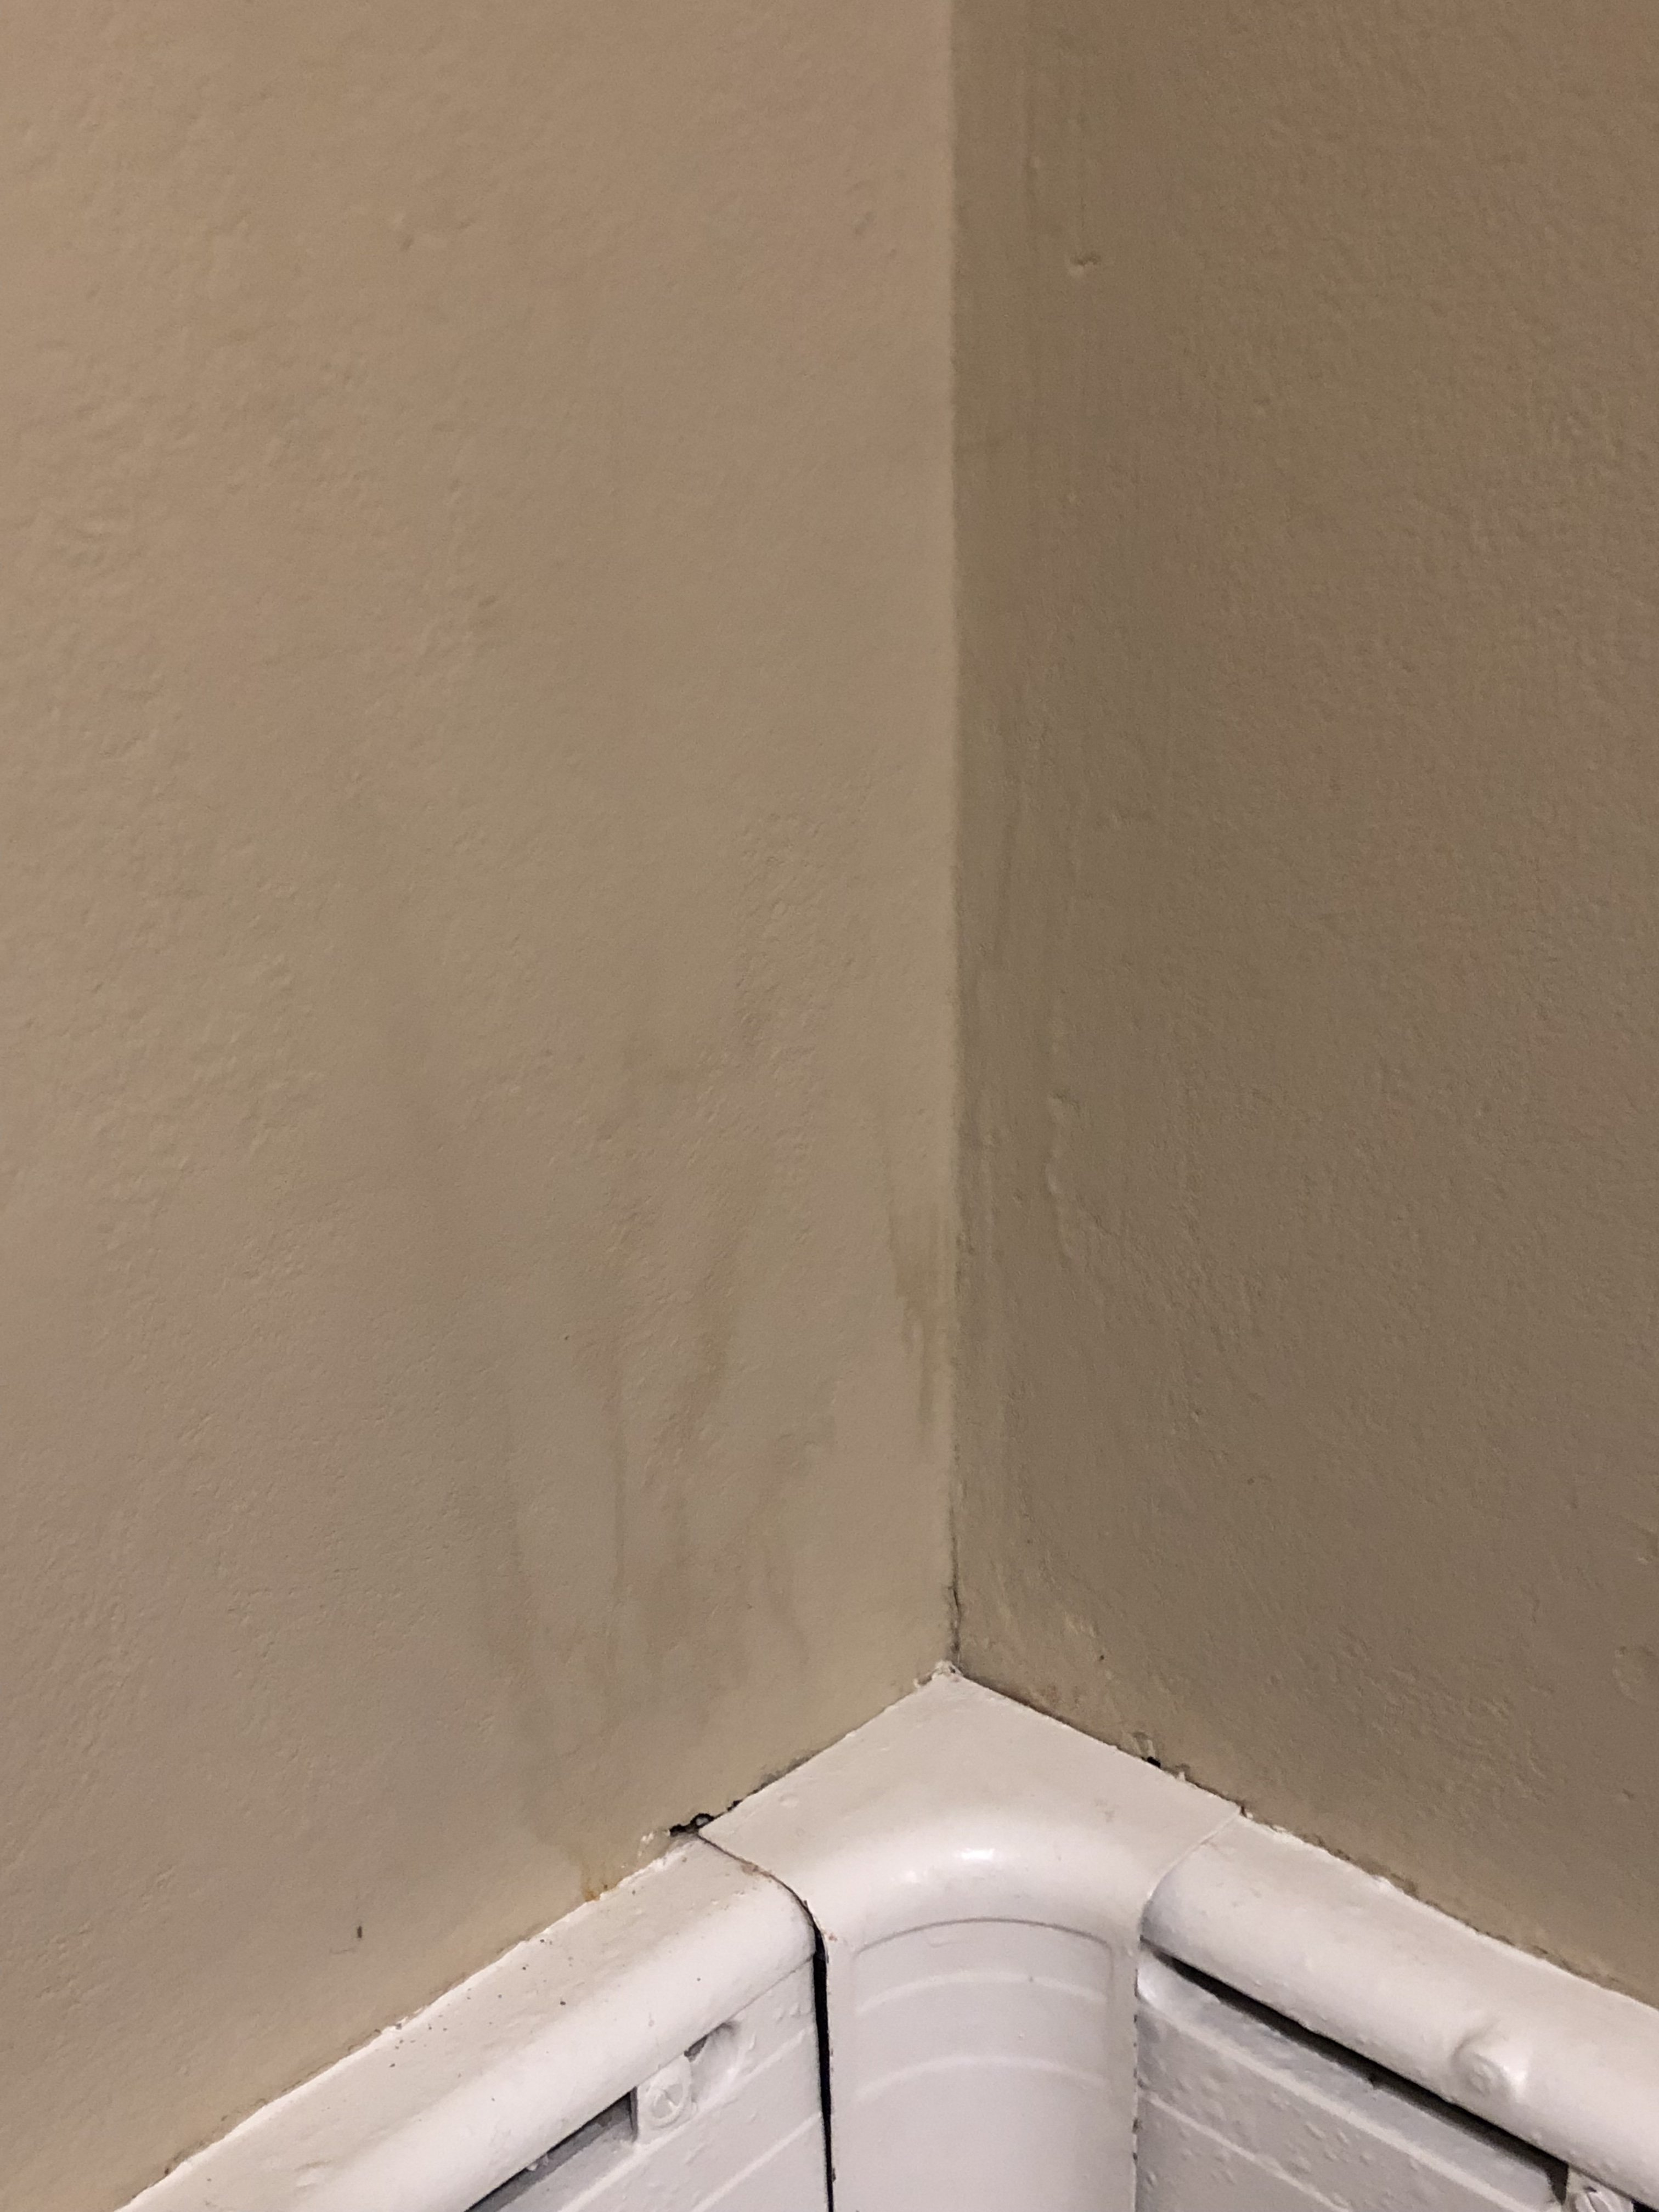 Old Cast Iron Baseboard Radiators - loads of noise and steam